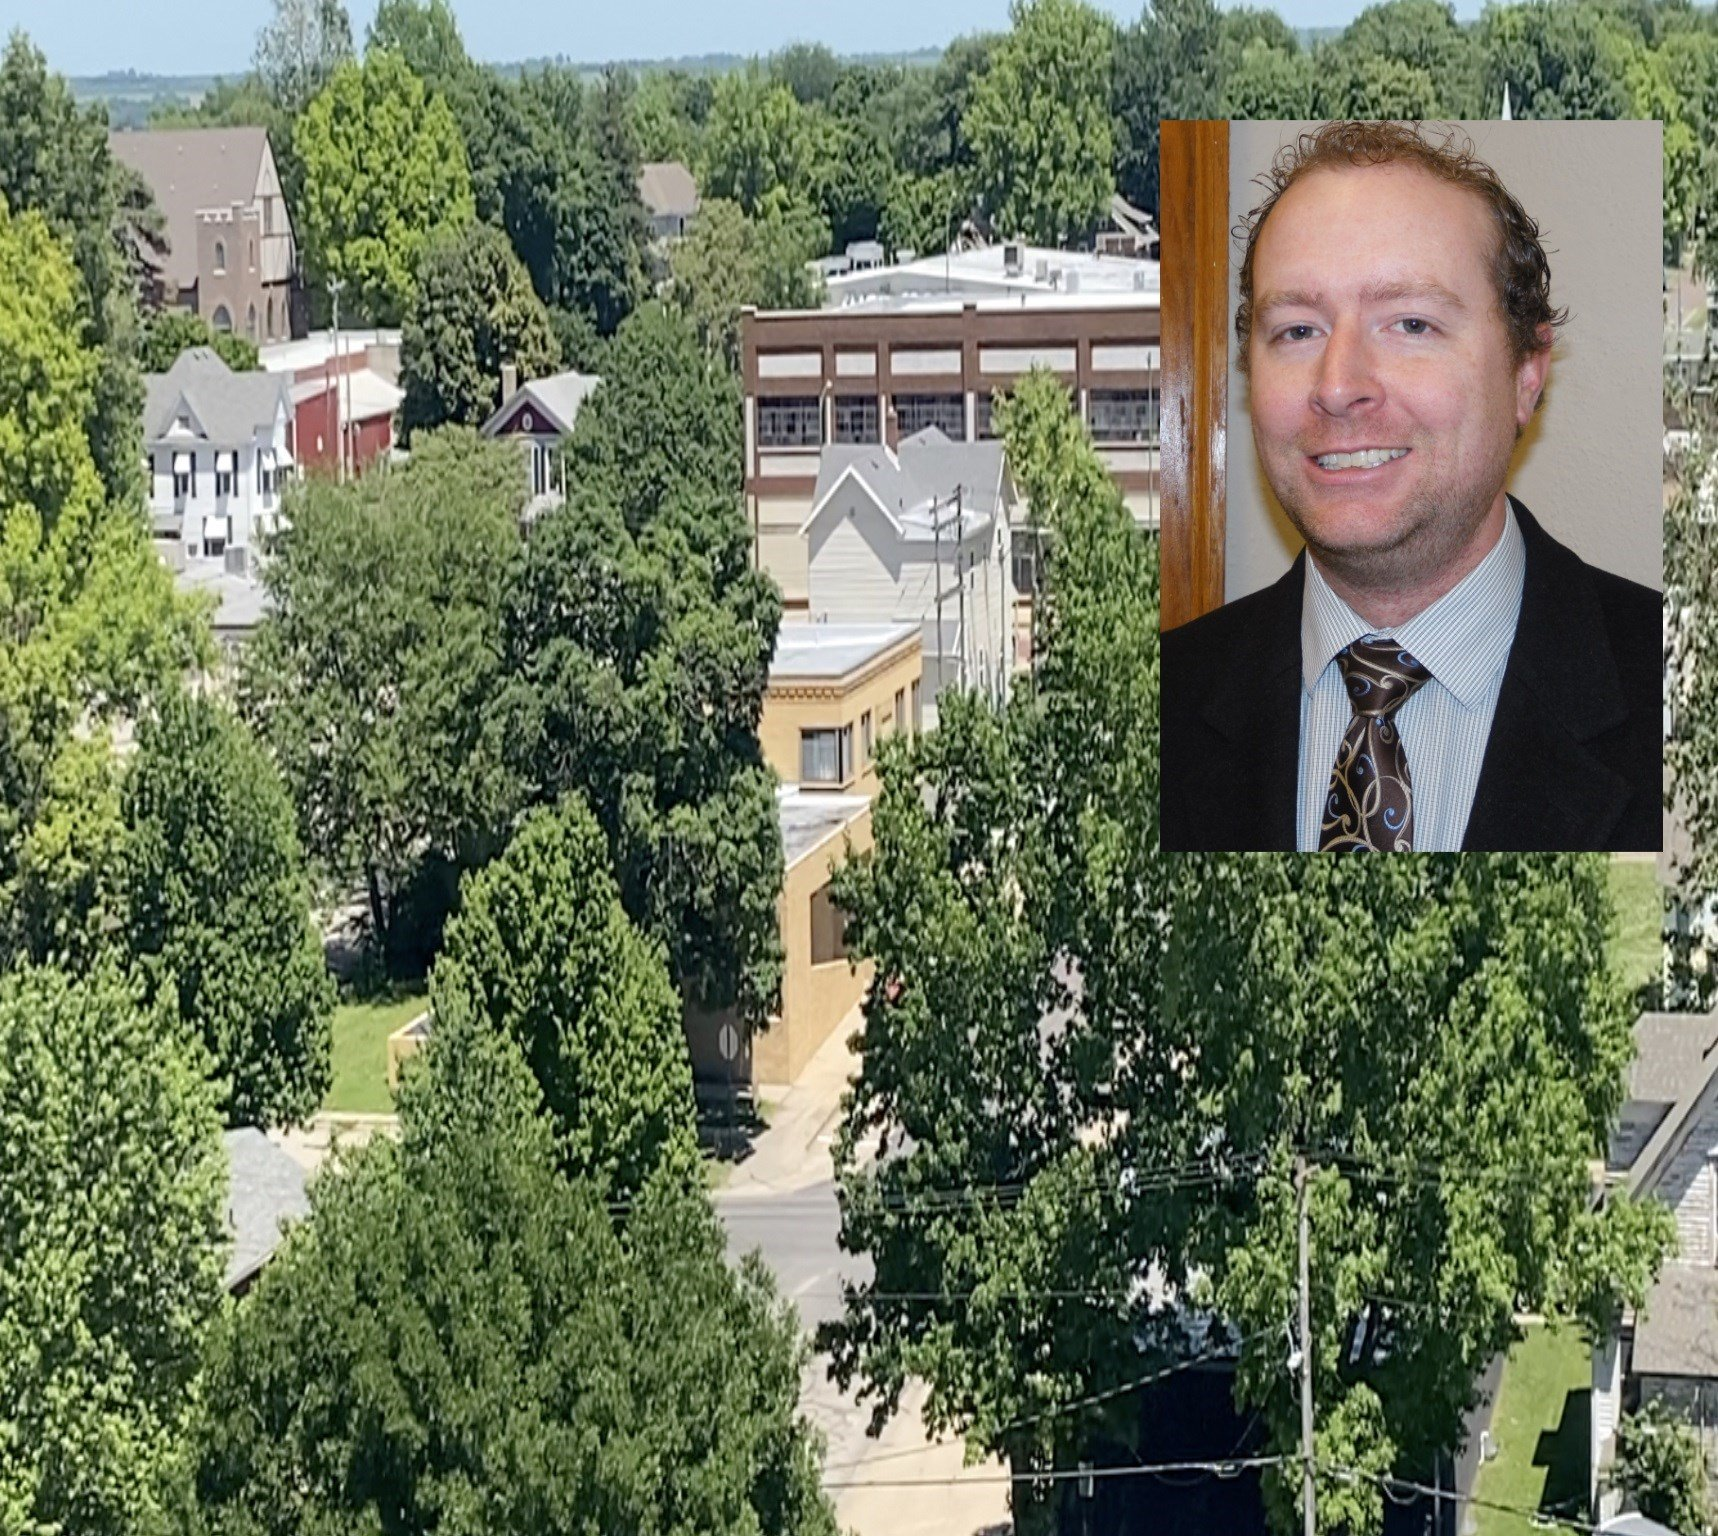 Falls City sets meeting to appoint city administrator